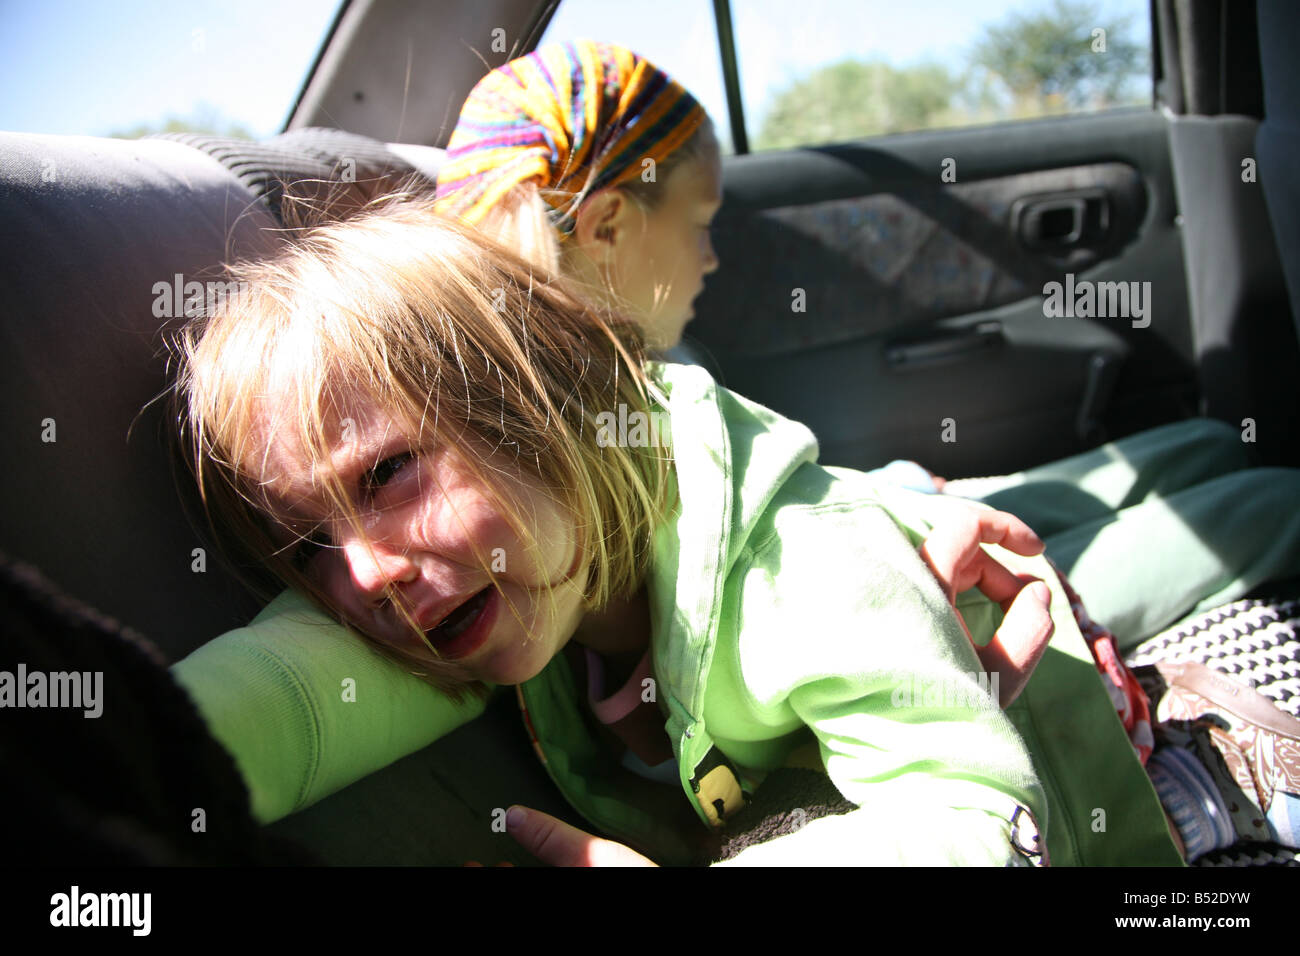 Three year old girl crying with her older sister in backseat of car Teary eyed girl sad distraught Siblings Younger - Stock Image